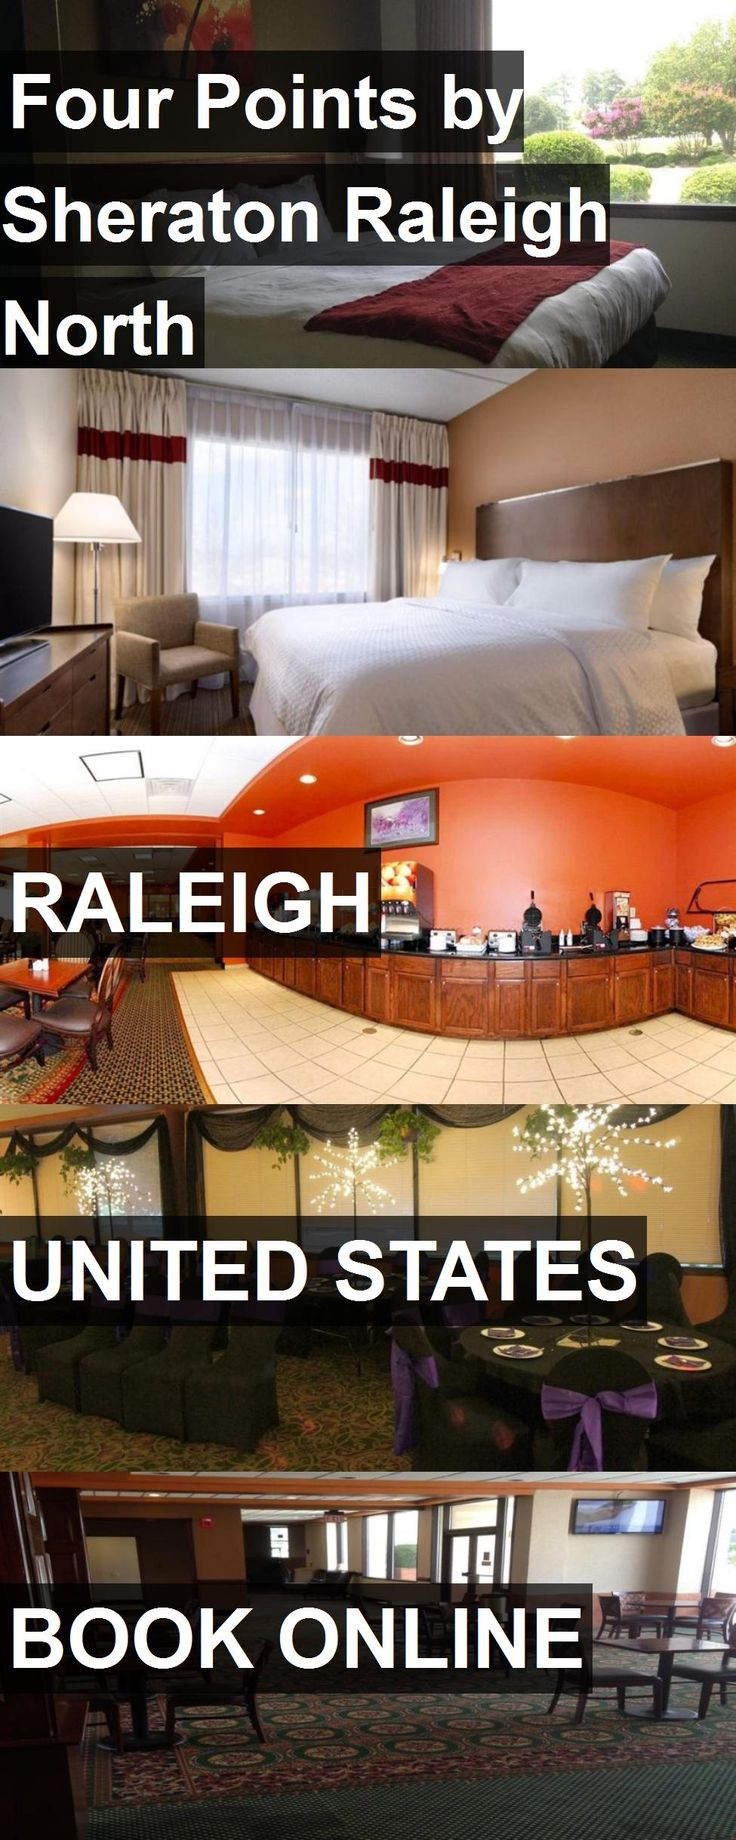 Hotel Four Points by Sheraton Raleigh North in Raleigh, United States. For more information, photos, reviews and best prices please follow the link. #UnitedStates #Raleigh #travel #vacation #hotel